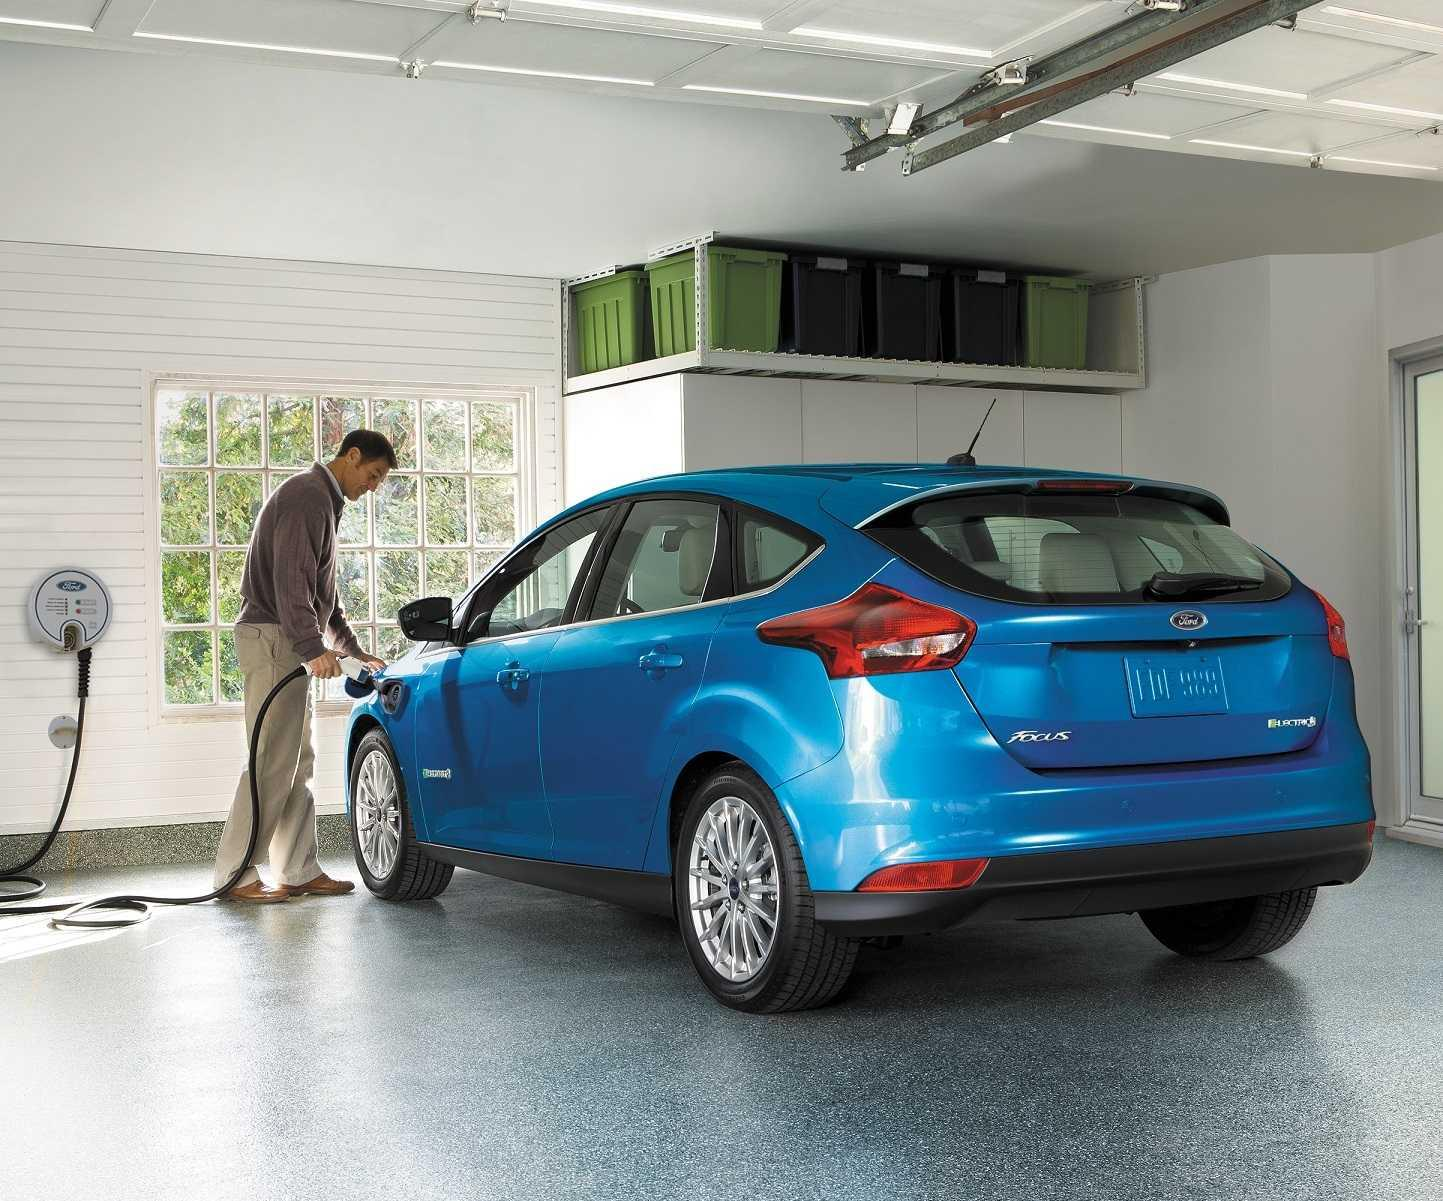 What to expect from the electric Ford Focus